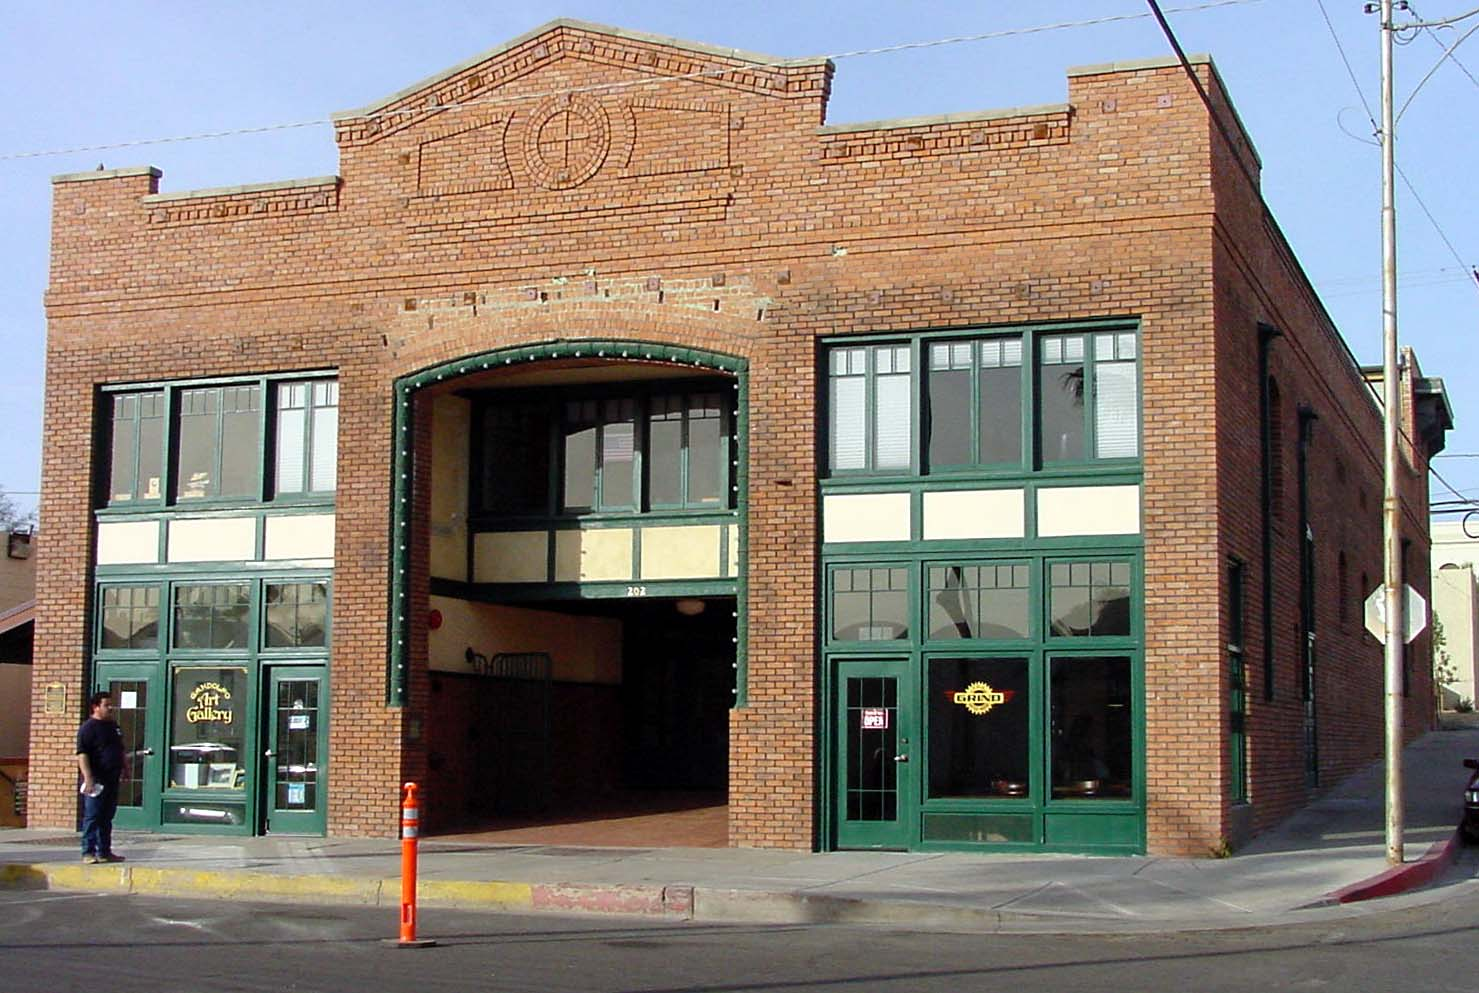 The historic Gandolfo Theatre, formerly a USO, was fully restored by a private party in partnership with the City of  Yuma using a Community Development Block Grant. It houses a restaurant, retail, and non-profit service agencies.